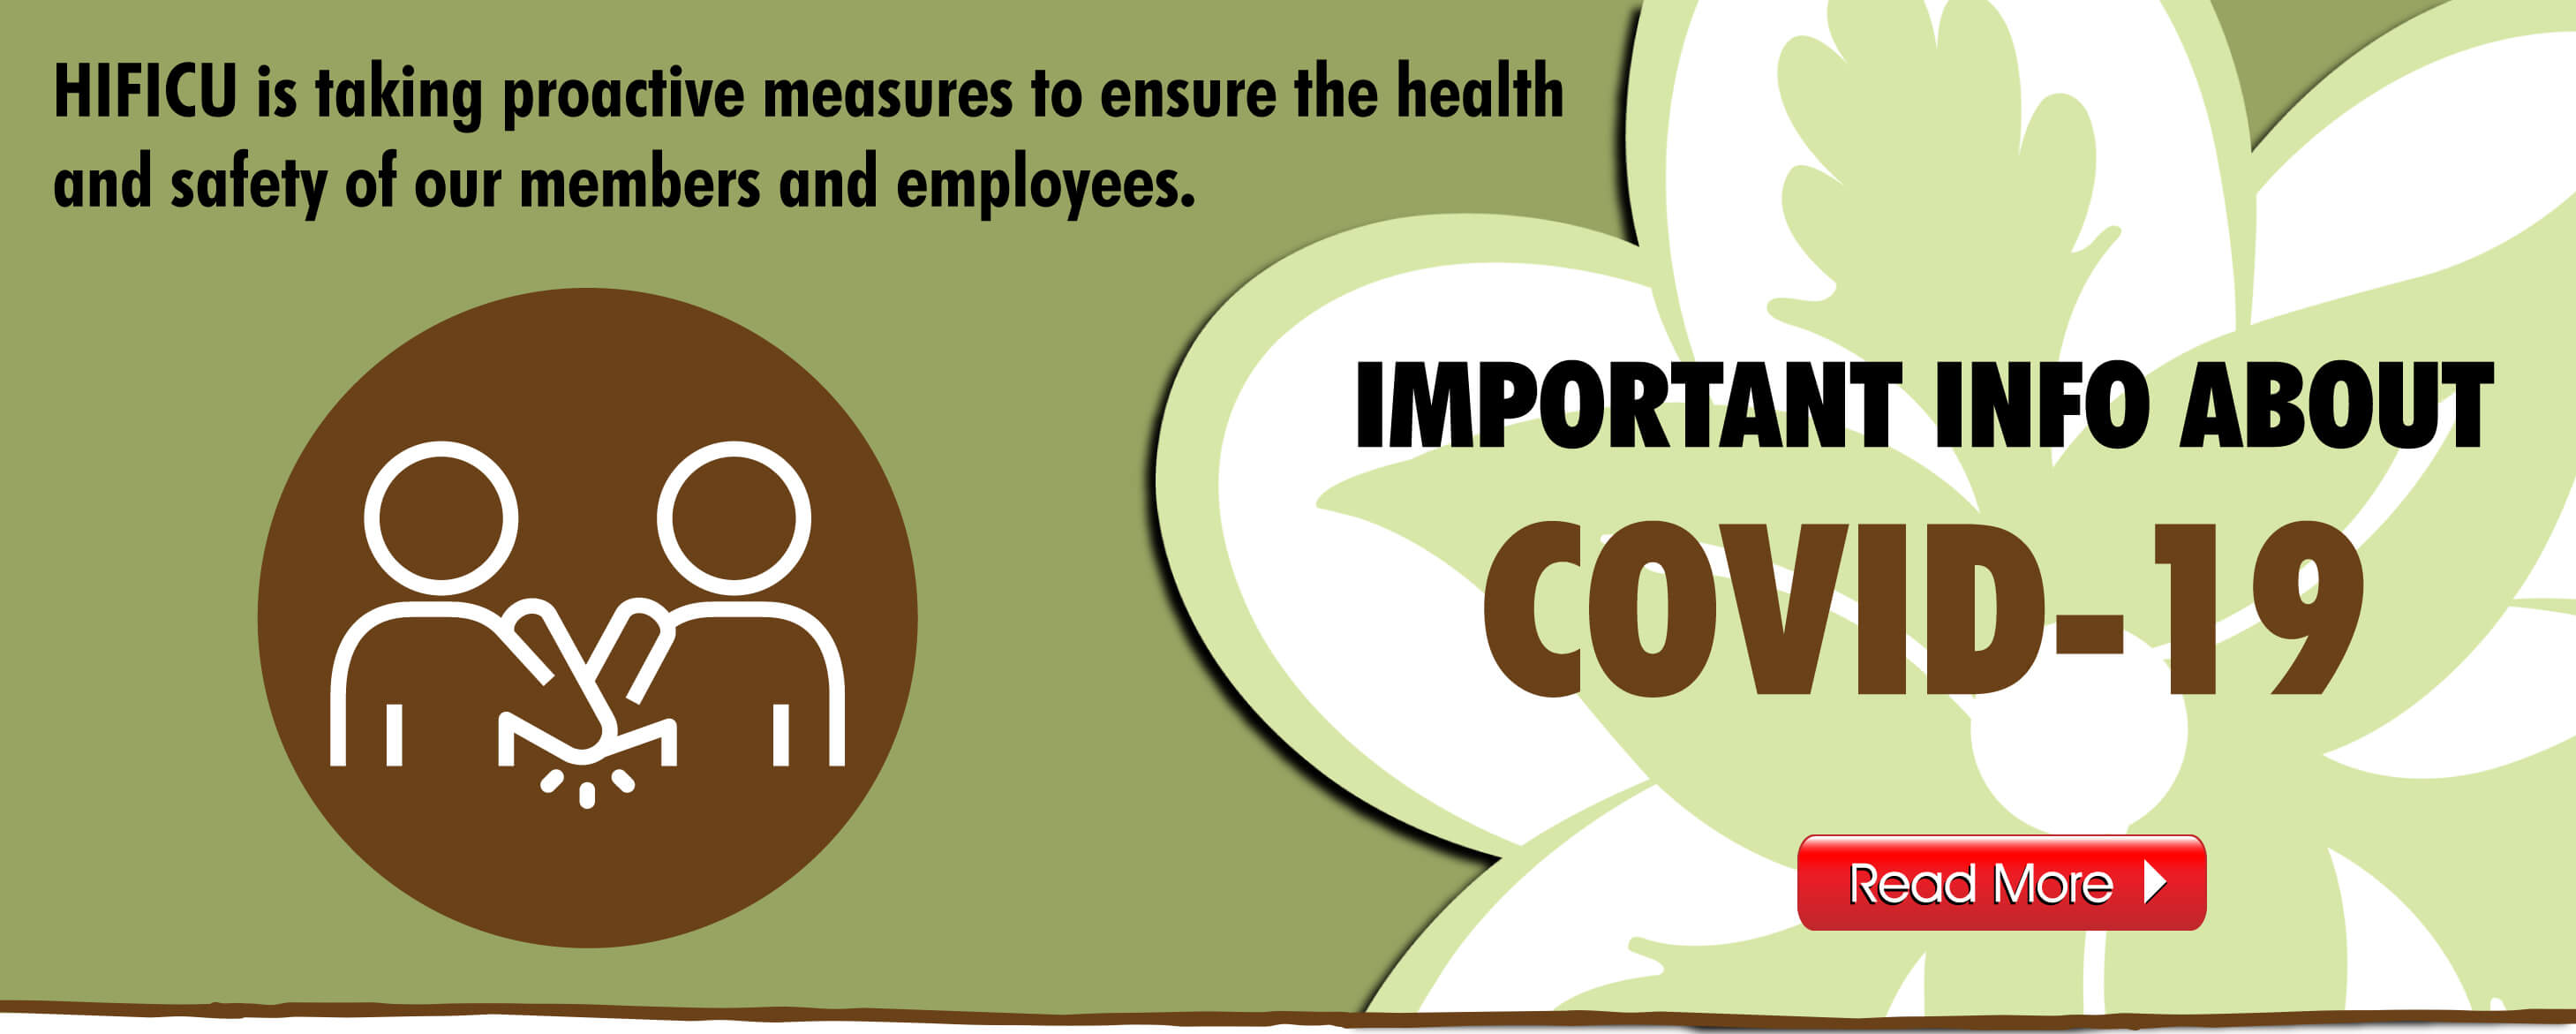 HIFICU is taking proactive measures to ensure the health and safety of our members and employees.  Click for more info regarding COVID-19 Coronavirus.